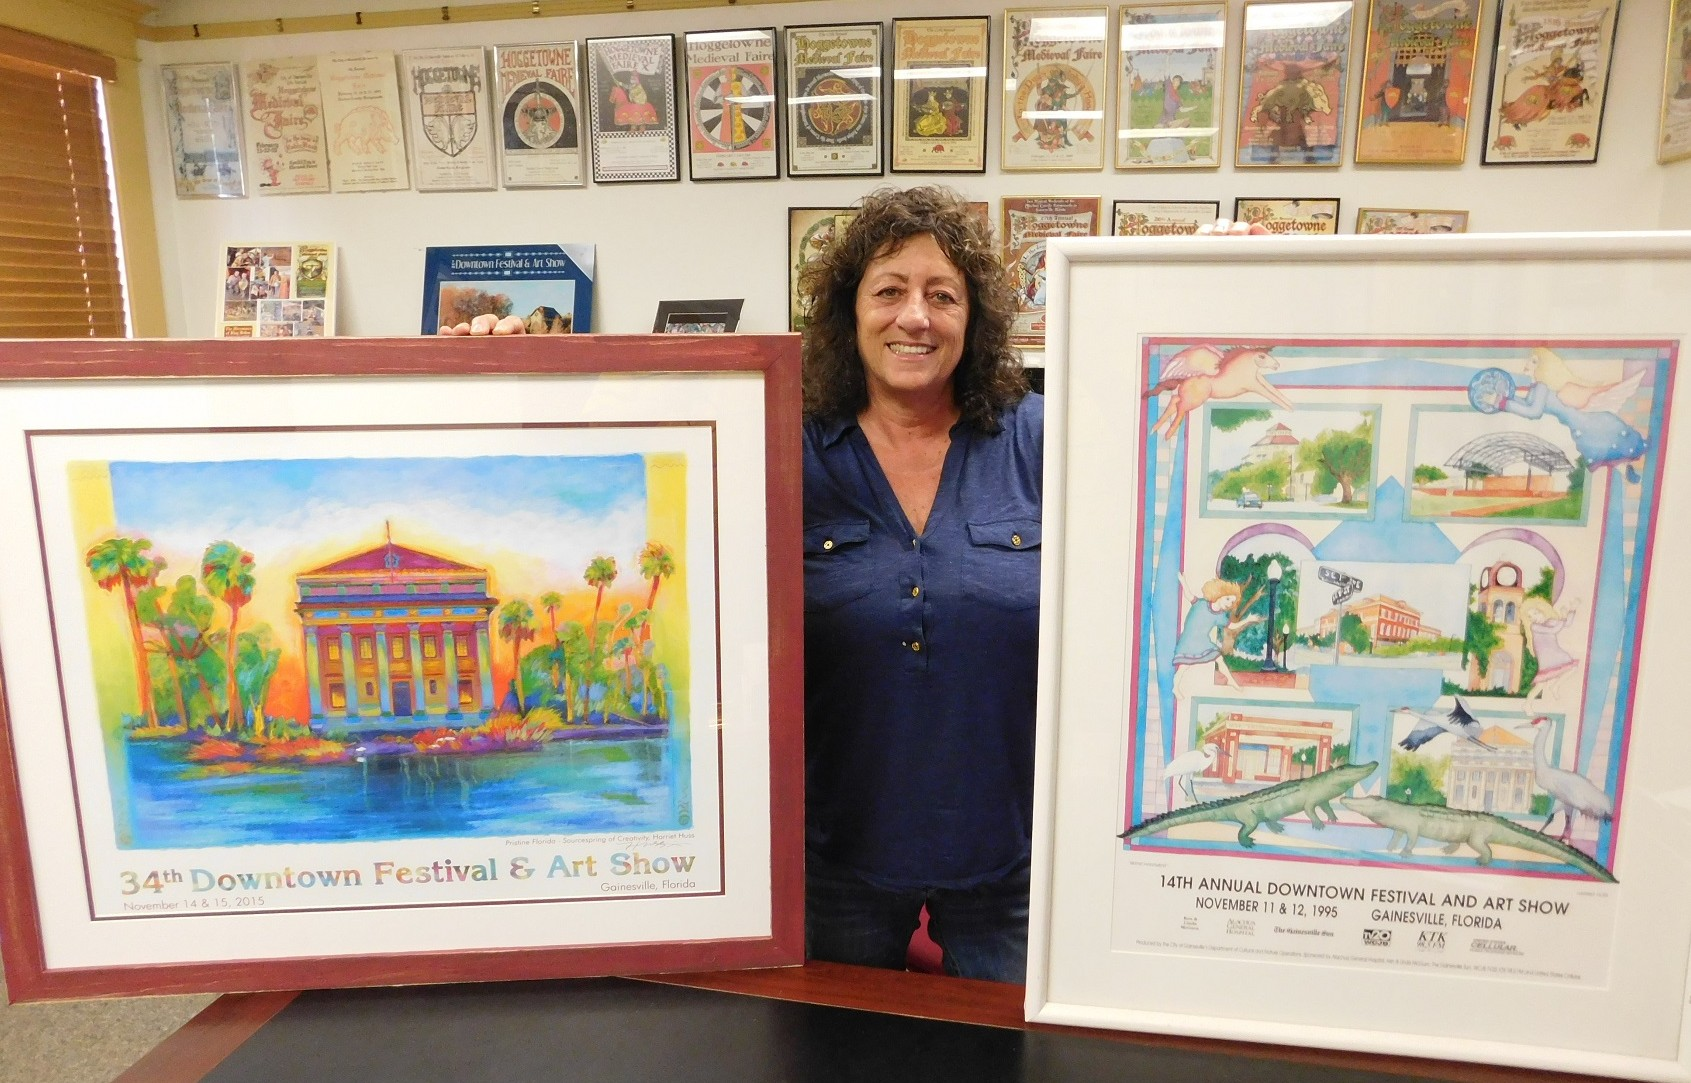 Linda Piper displays two Festival posters by Harriet Huss, one from this year and one from 1995.